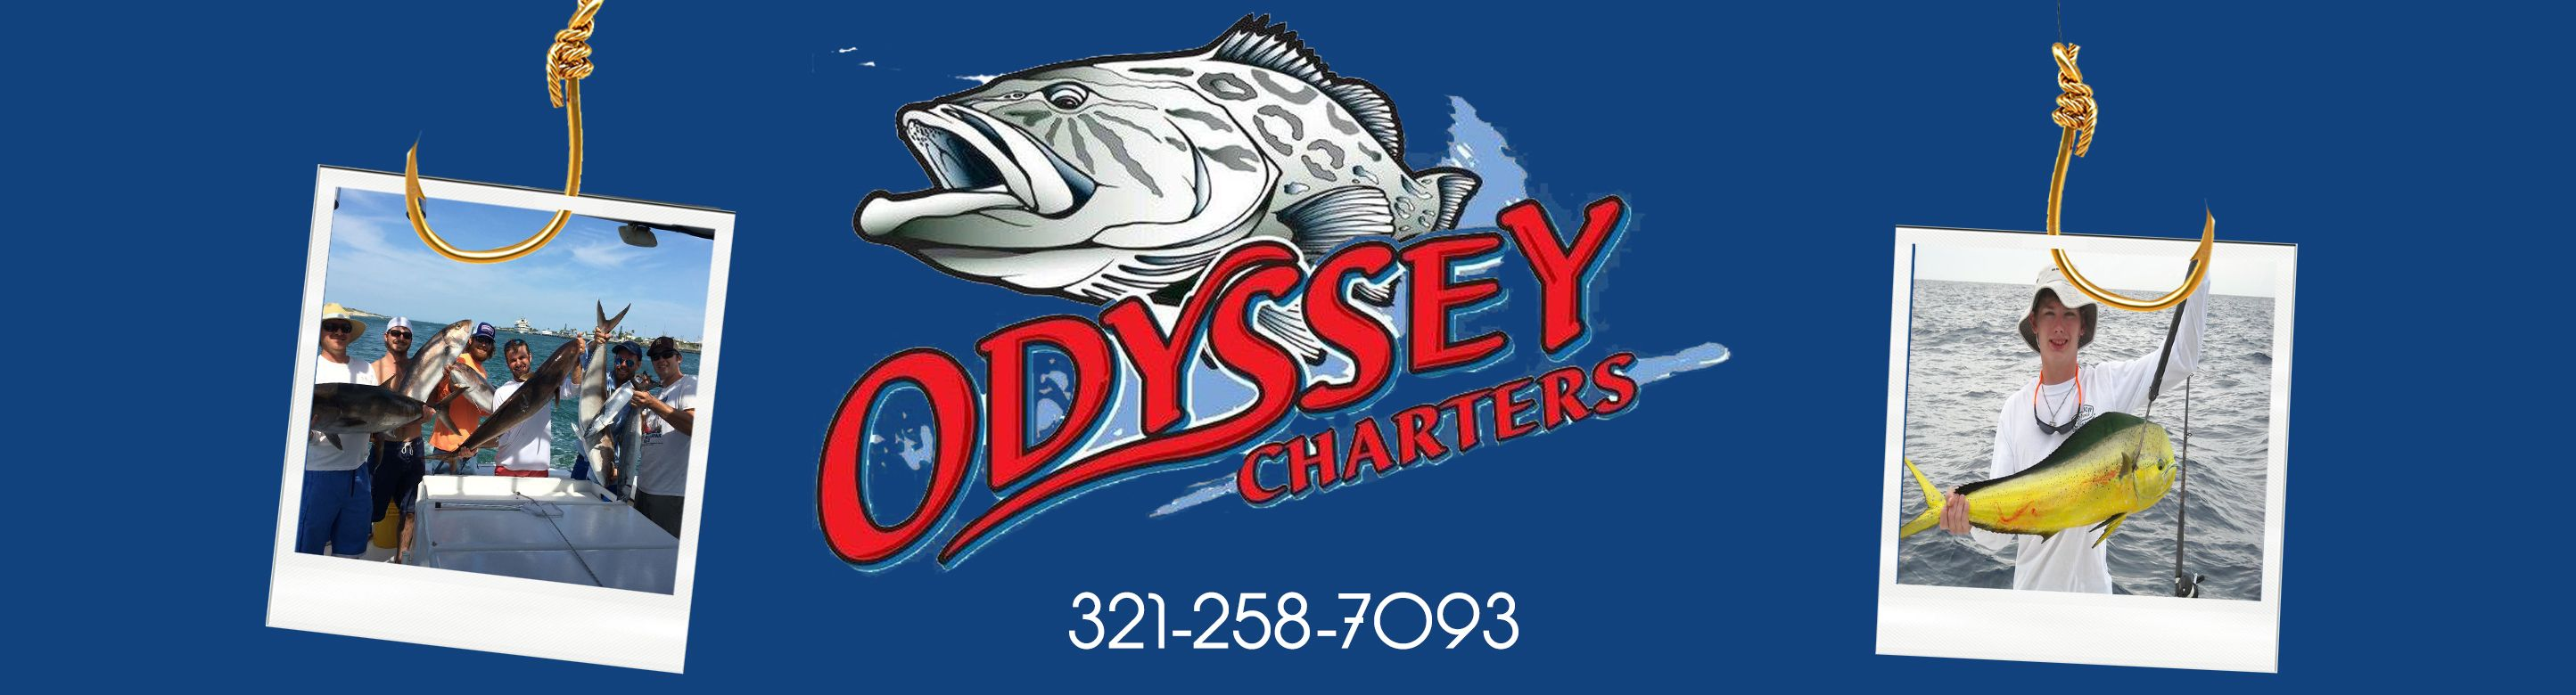 Odyssey Fishing Charters in Cape Canaveral, FL.